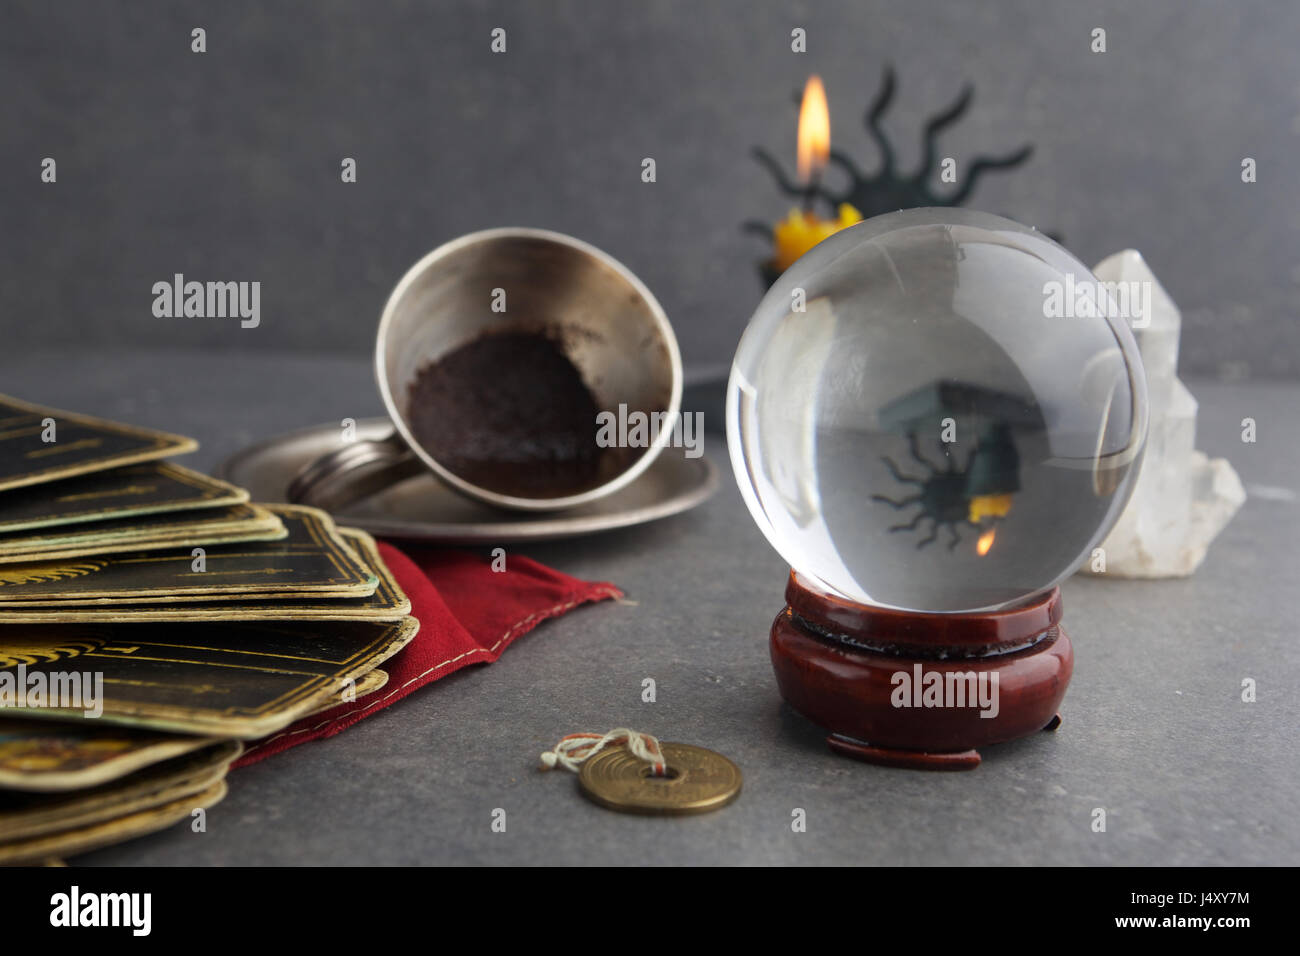 Composition of esoteric objects, used for healing and fortune-telling - Stock Image